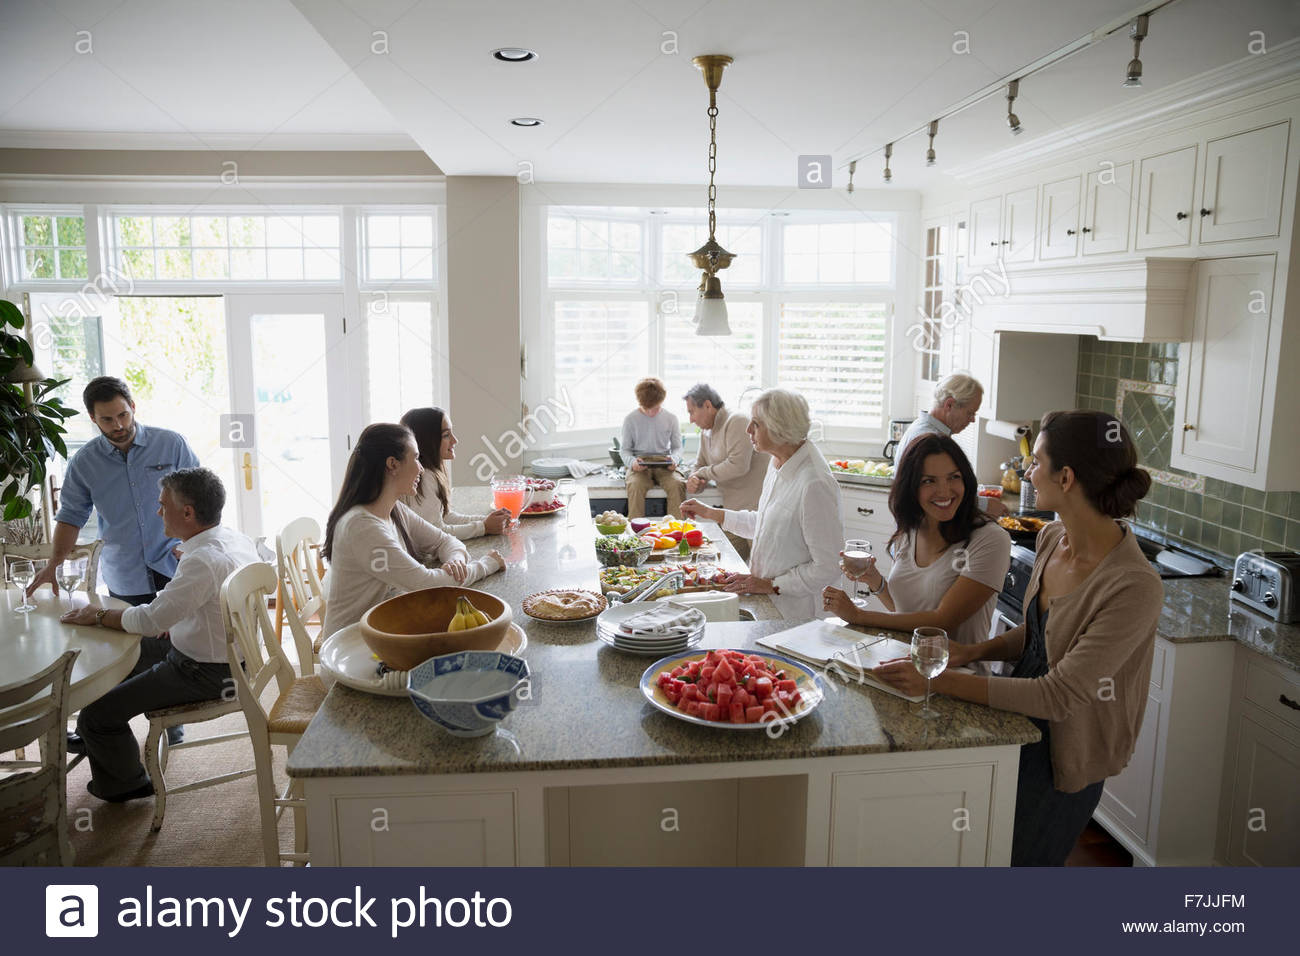 Multi-generation family gathering and cooking in kitchen - Stock Image